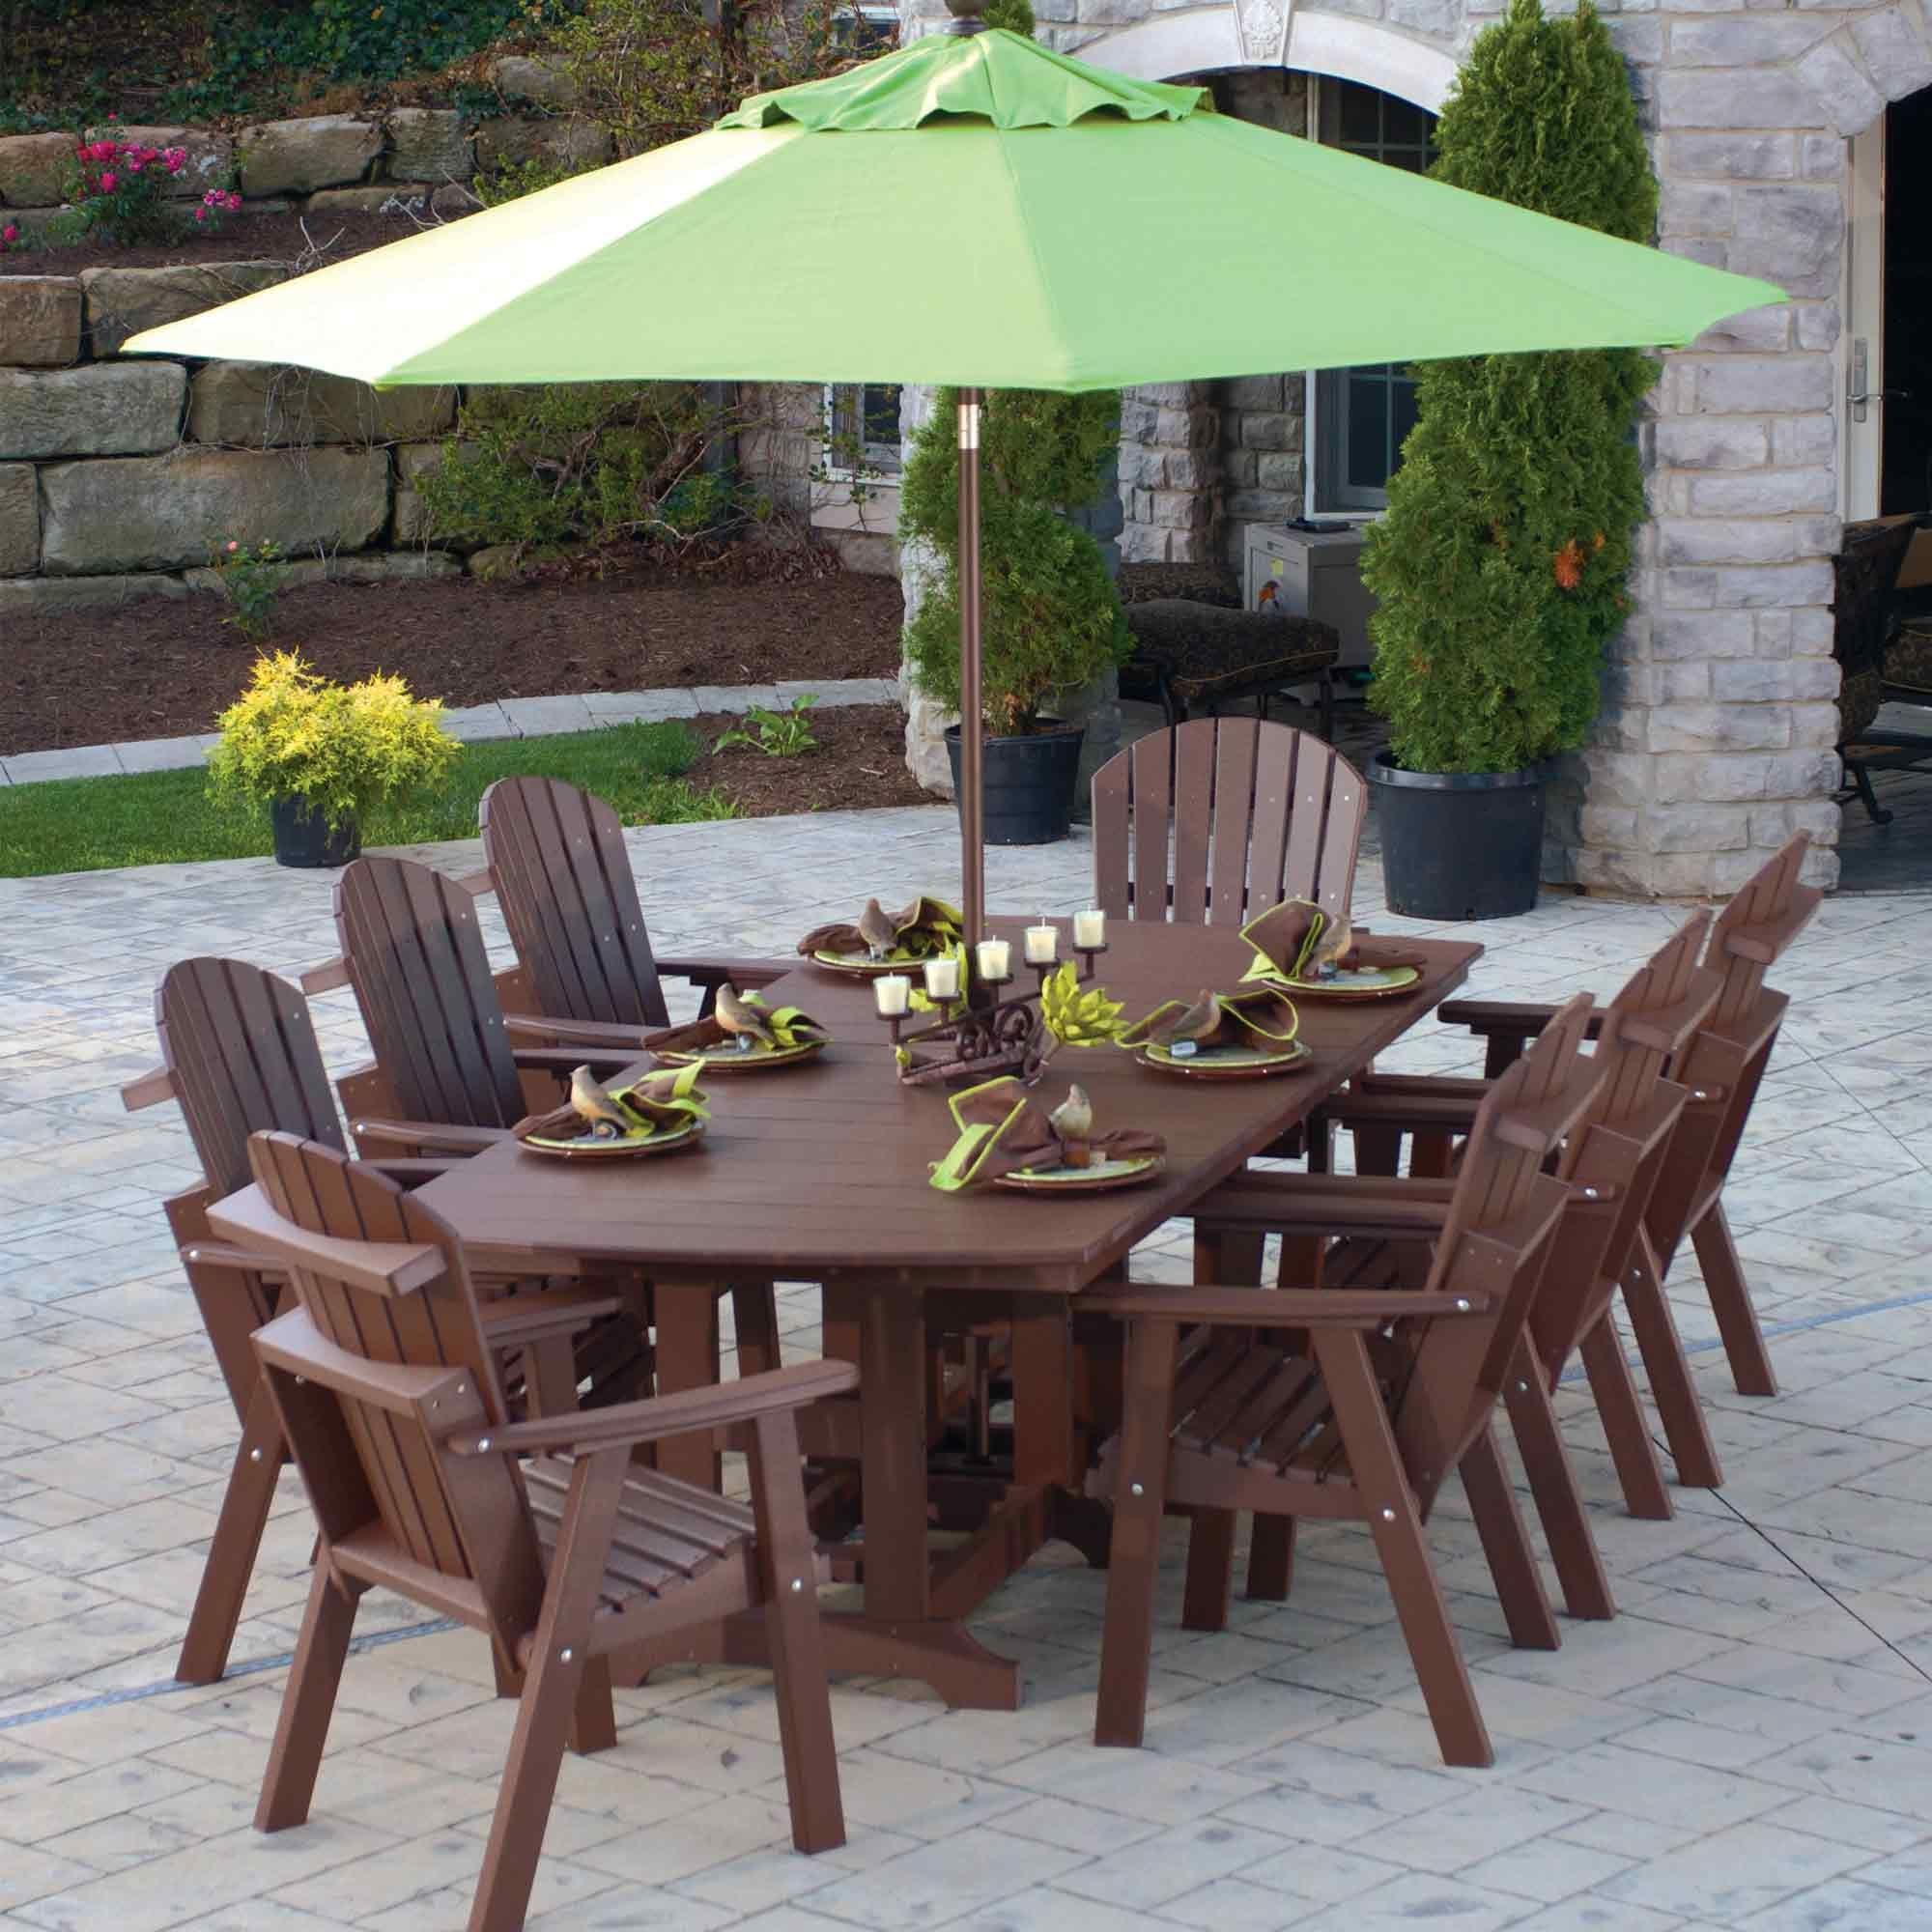 R Dining Set By Berlin Gardens Outdoor Polywood Furniture That Never Fades